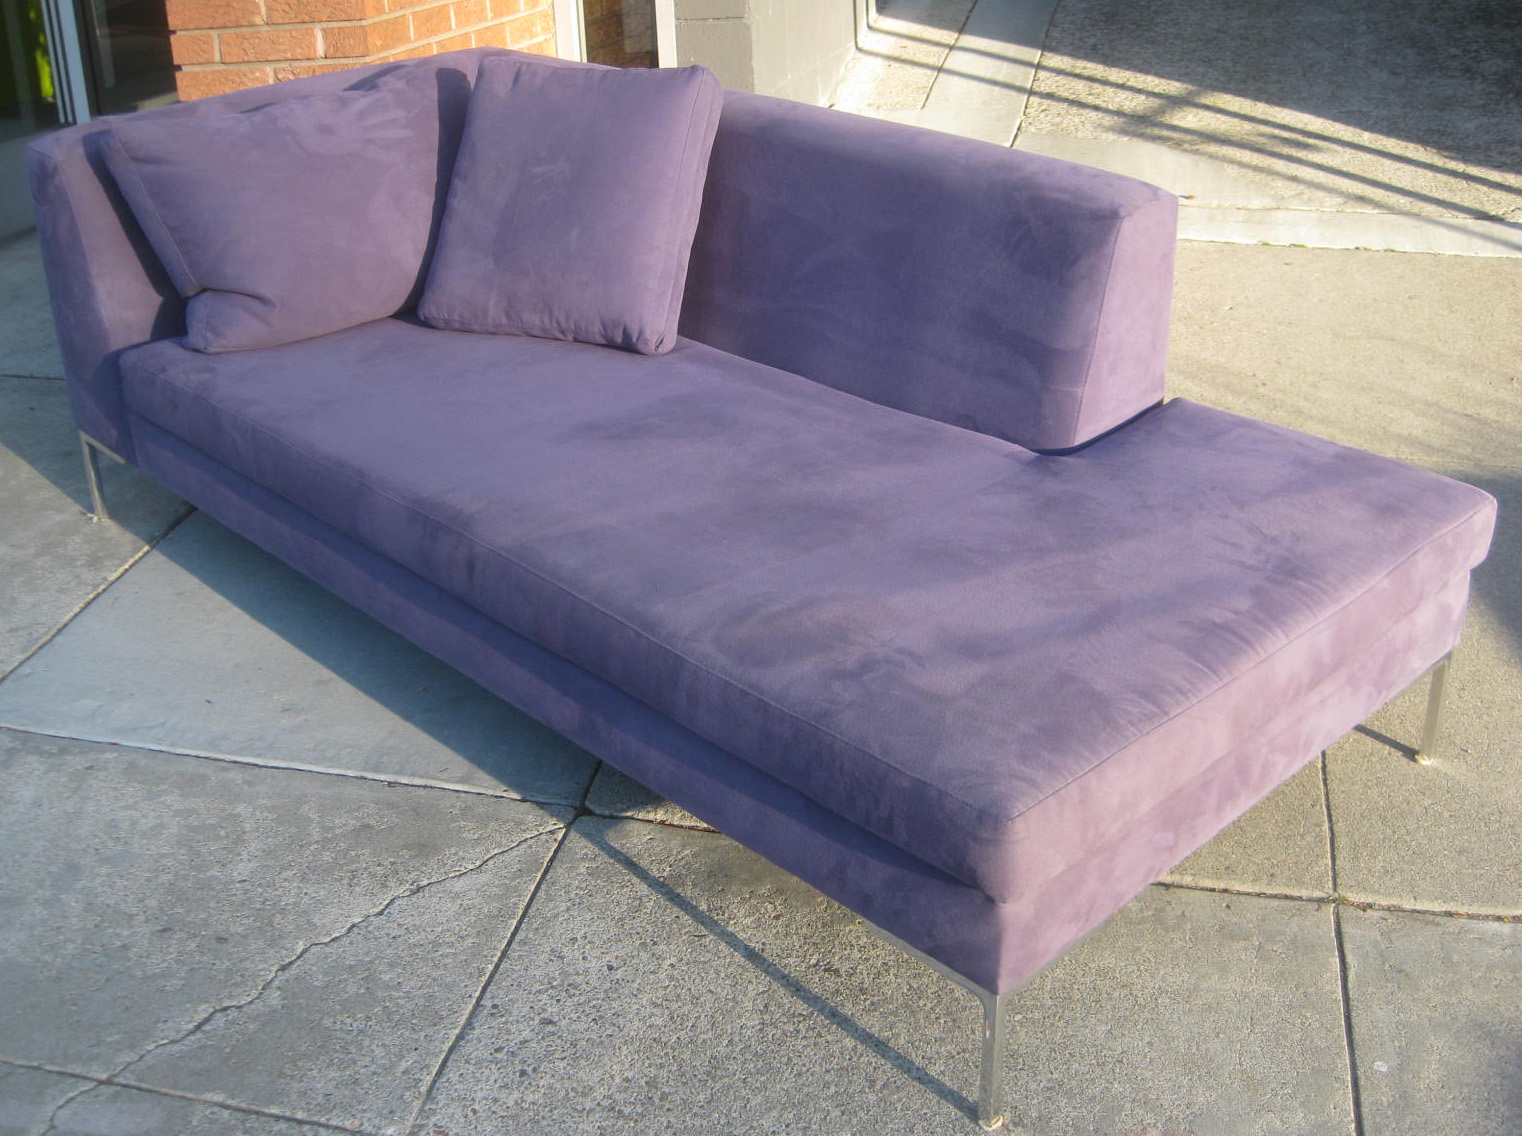 Uhuru Furniture Amp Collectibles Sold Purple Chaise Lounge